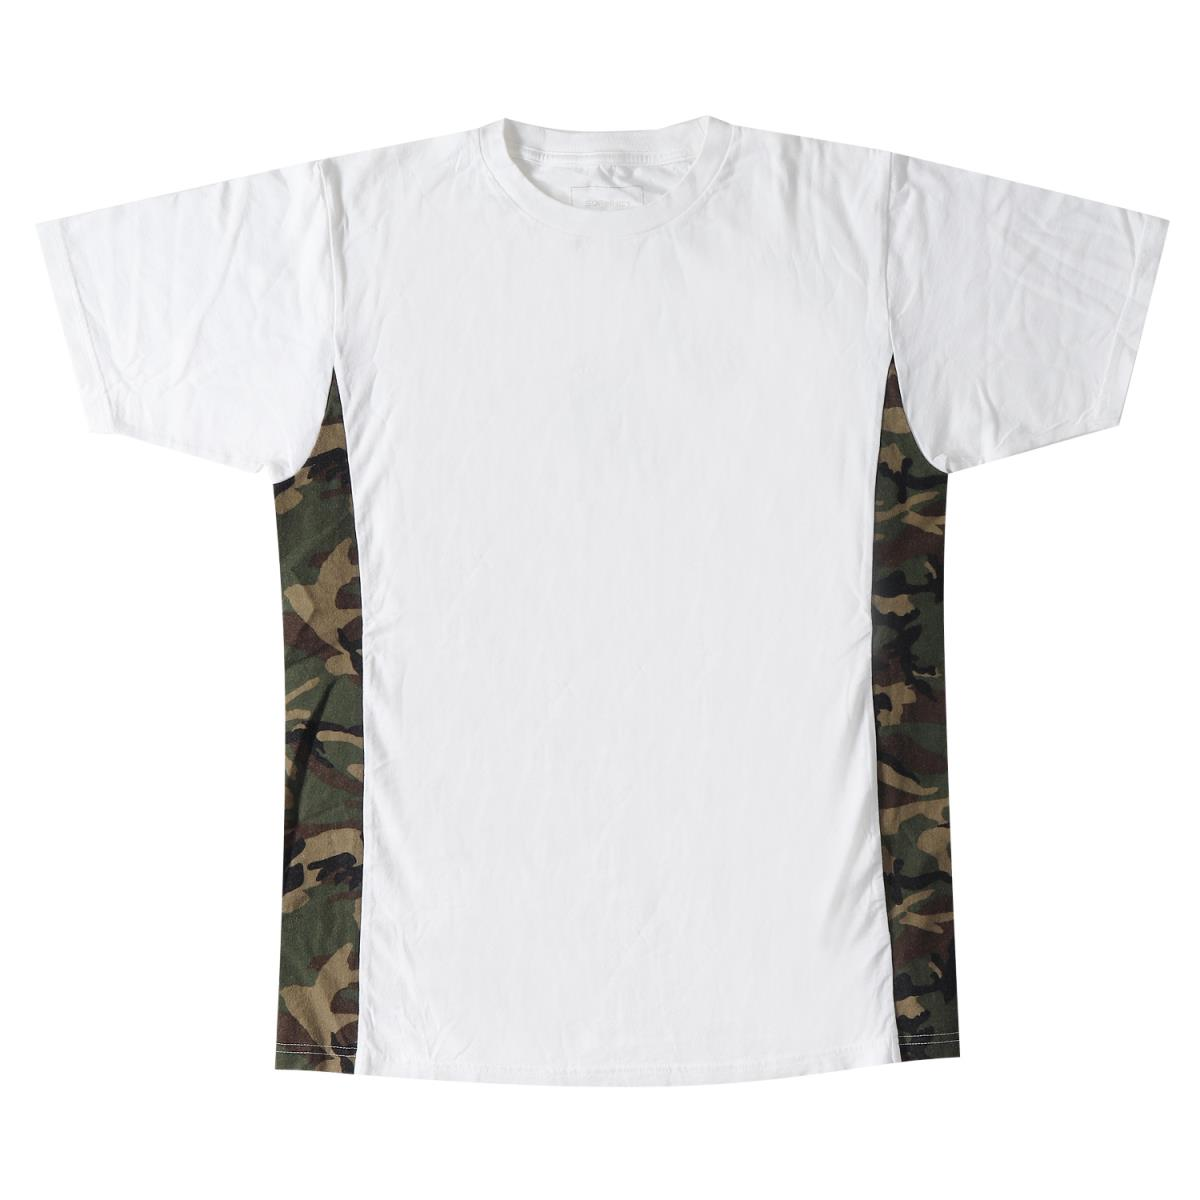 3d90f1c09d SOPHNET (ソフネット) camouflage pattern flannelette side panel T-shirt (MIX TEE  FLANNEL CAMOUFLAGE) white L